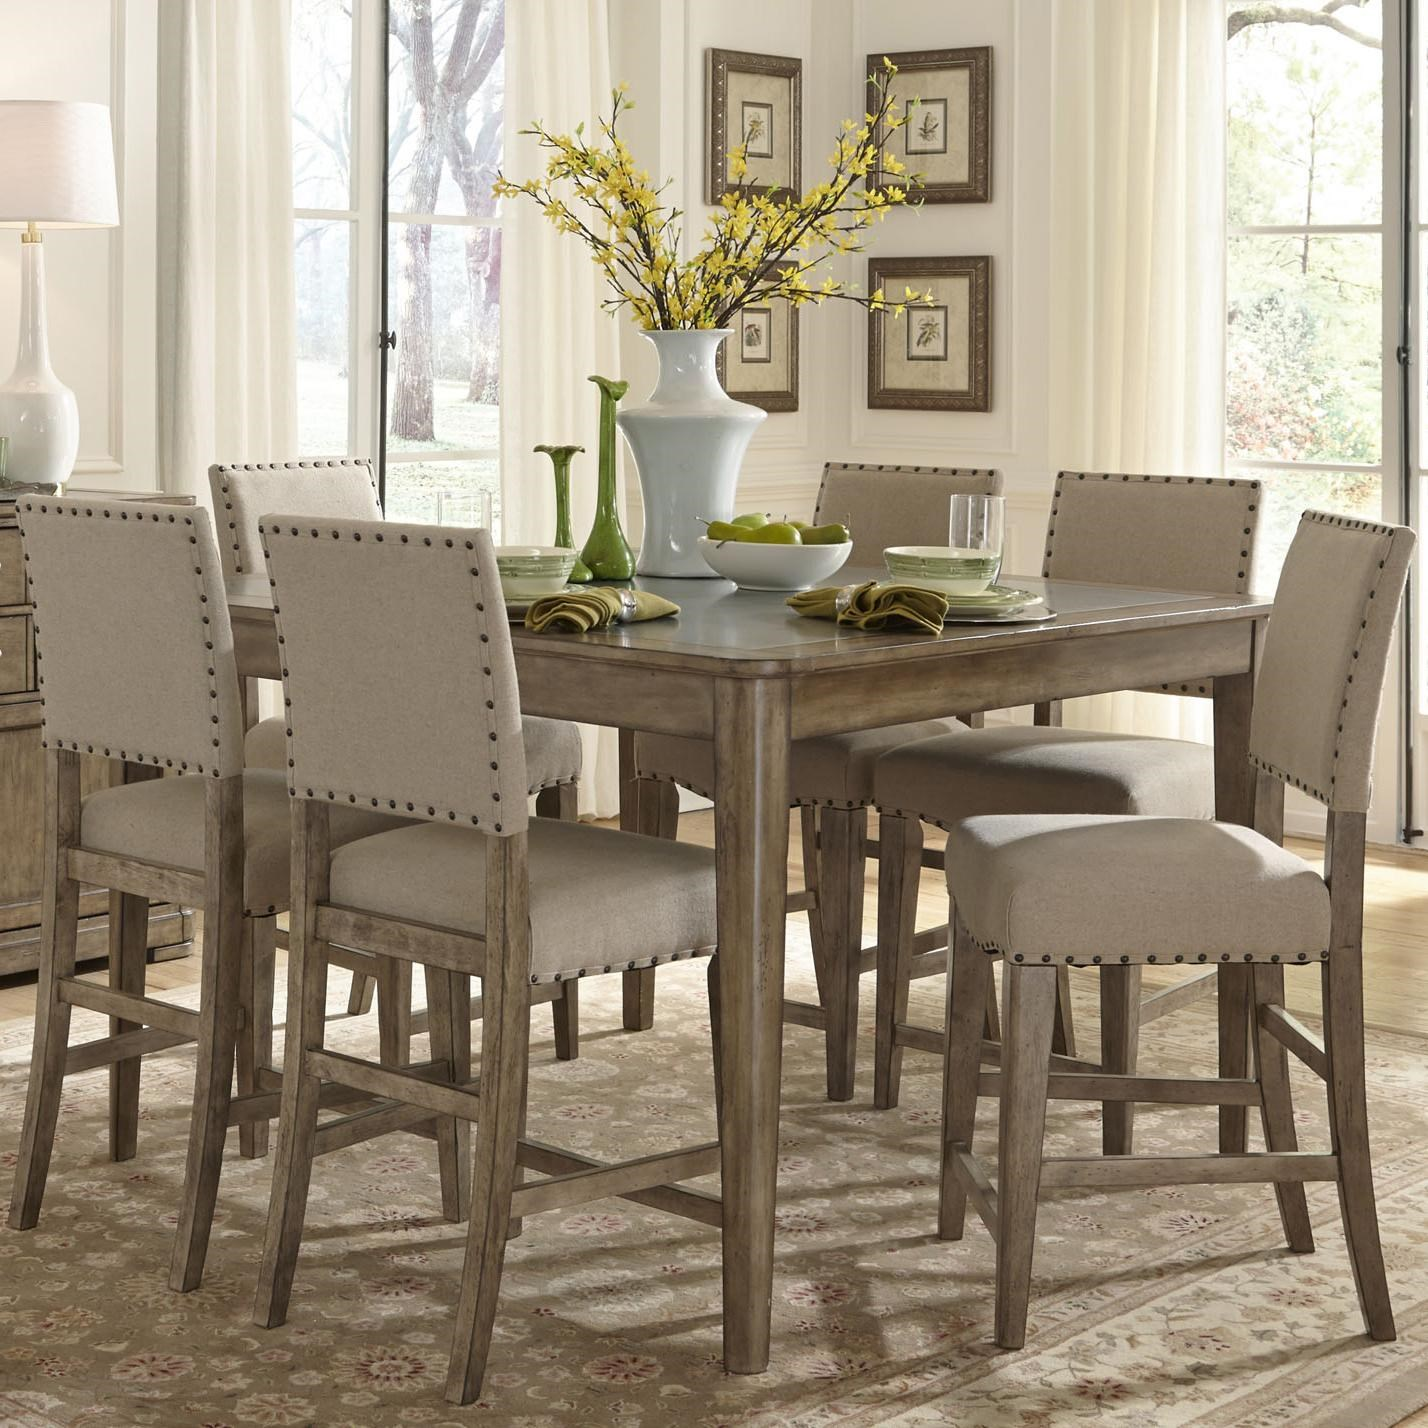 Liberty Furniture Weatherford Rustic Casual 7 Piece Gathering Height Table  And Chair Set | Royal Furniture | Pub Table And Stool Set